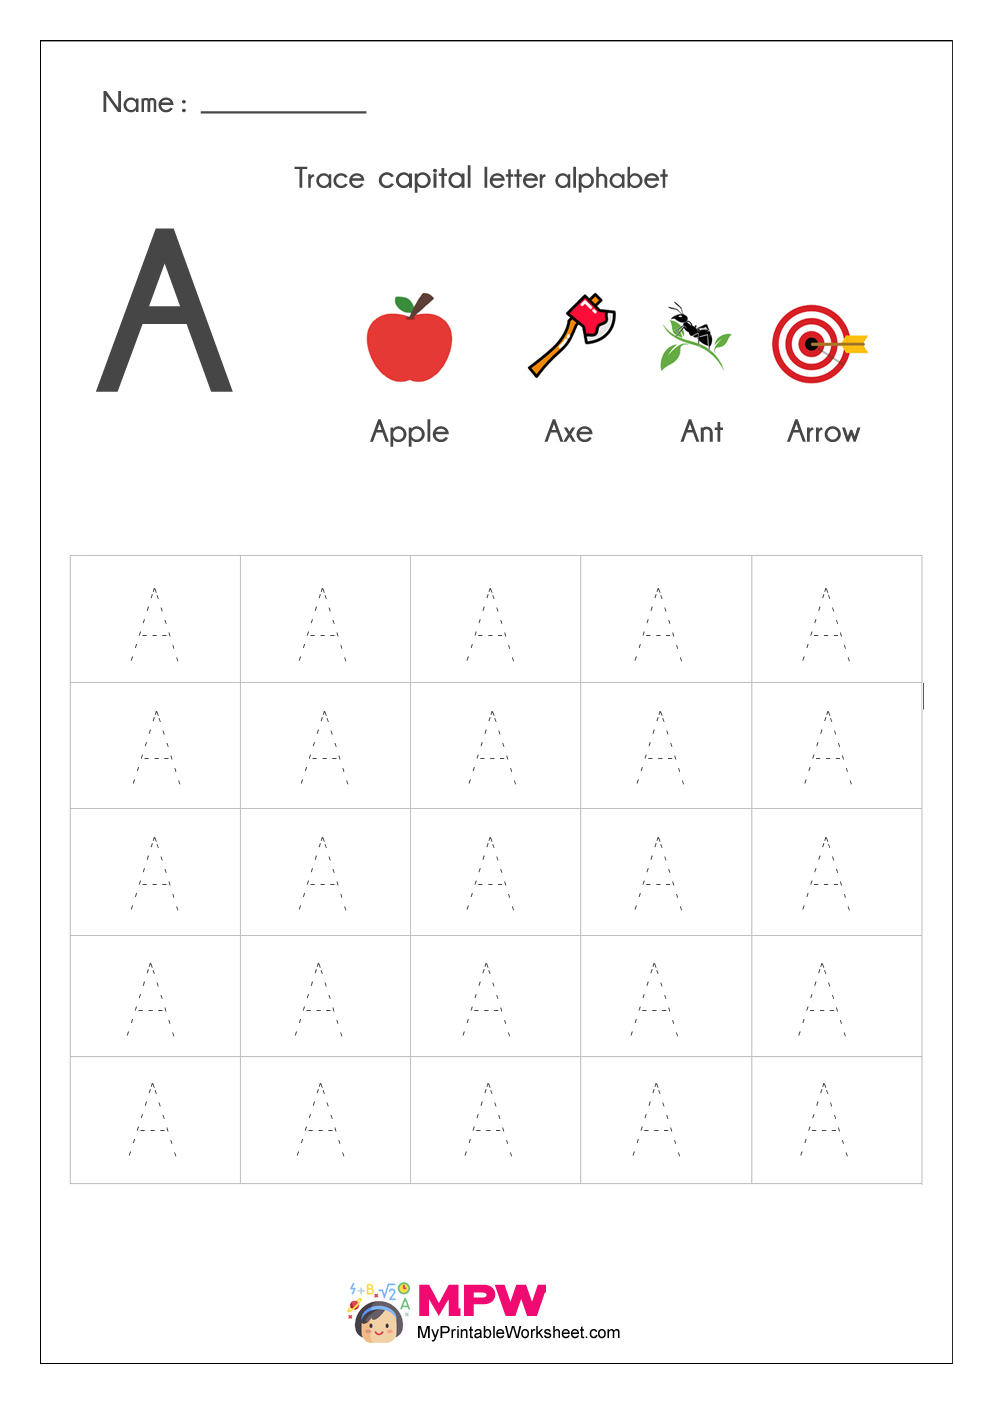 Alphabet Tracing Worksheets, Printable English Capital with regard to Alphabet Tracing Worksheets Lowercase